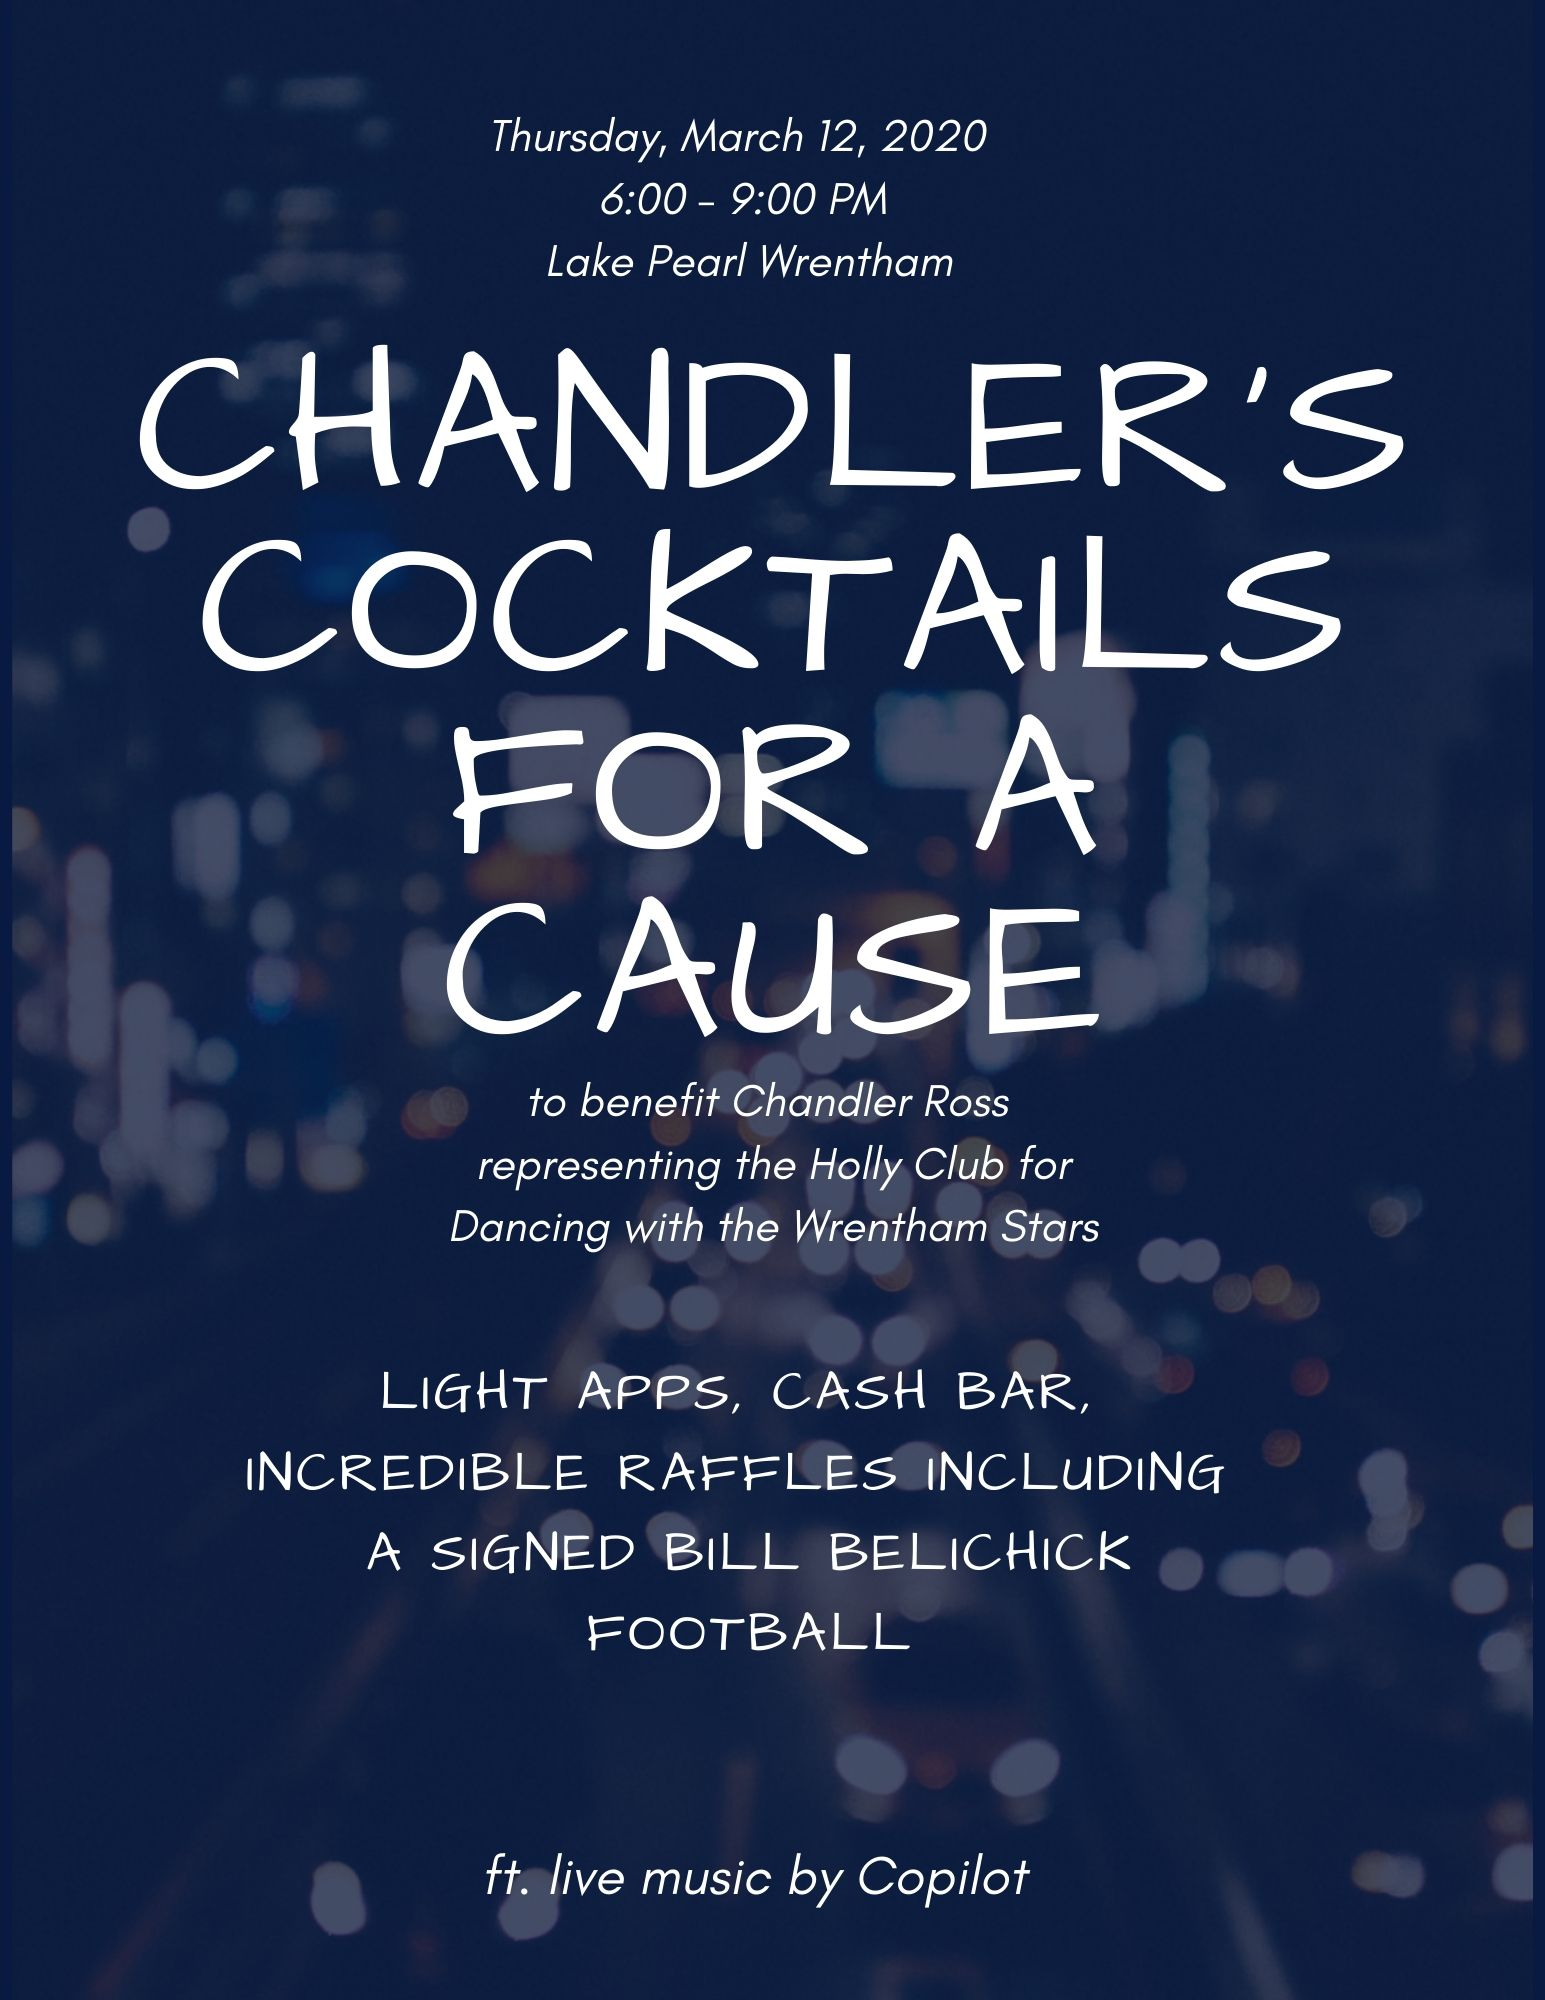 CHANDLER'S COCKTAILS FOR A CAUSE